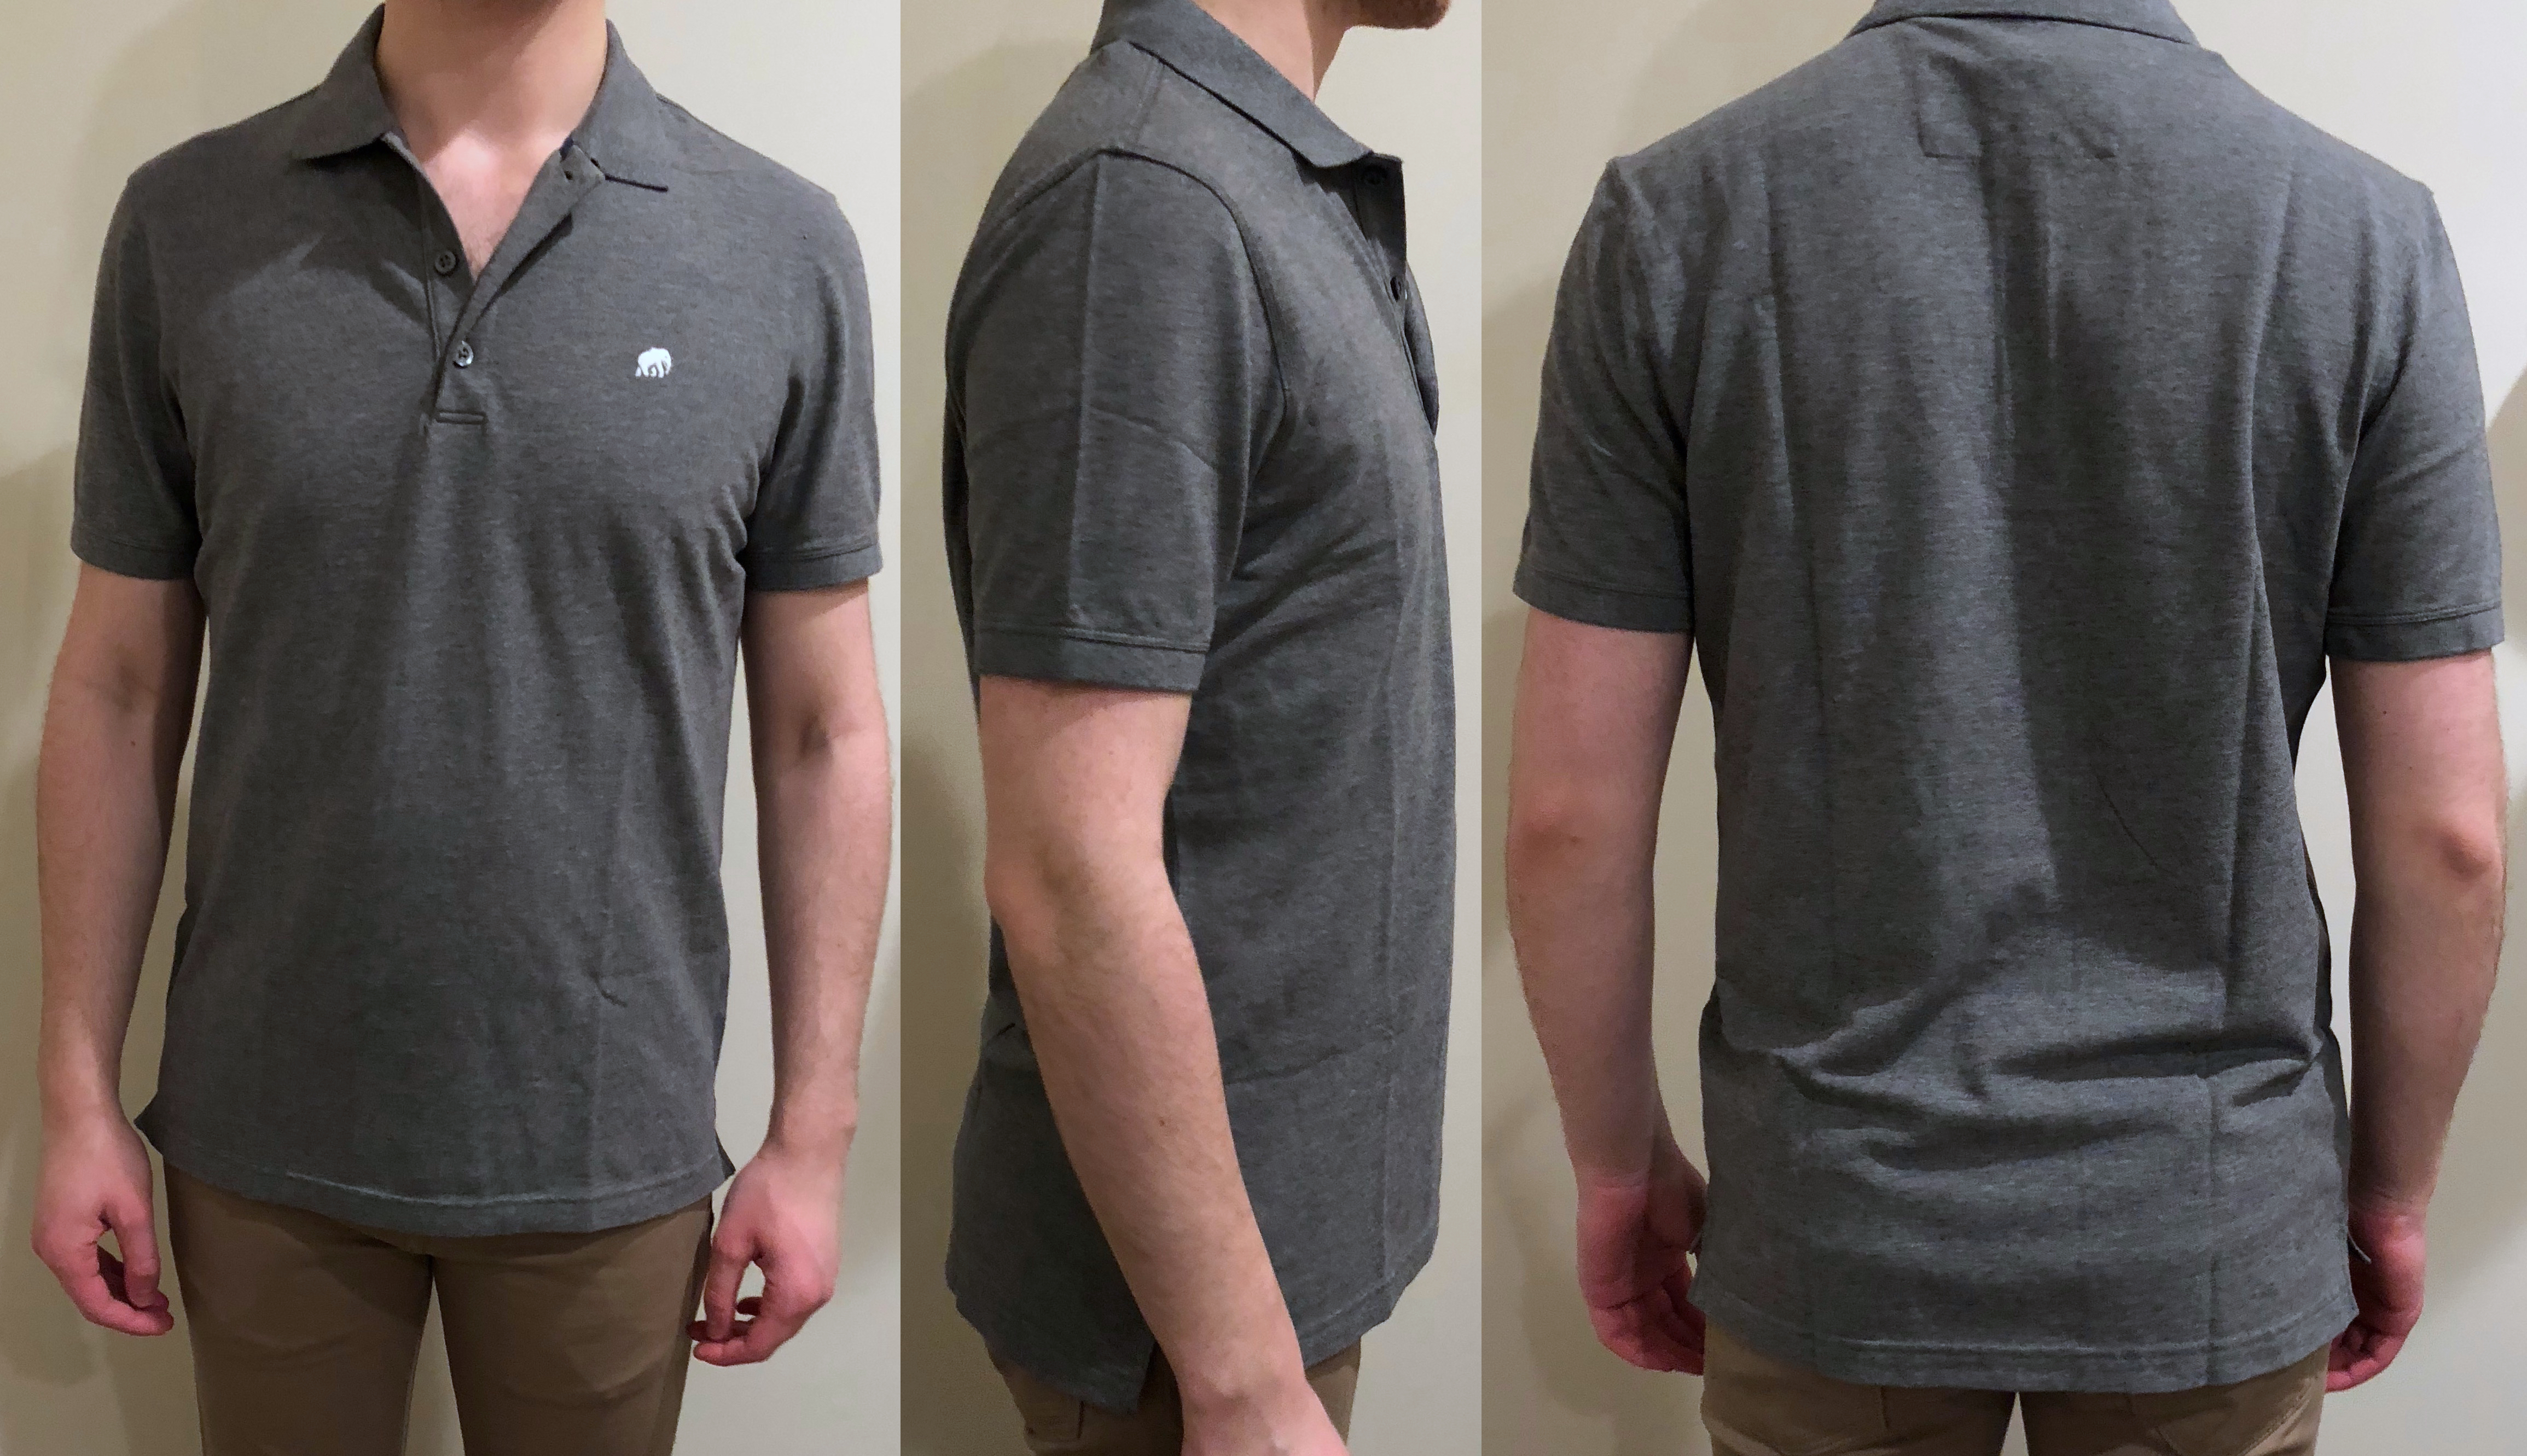 7fba8ade3 ... and much wider in both the chest and waist, though only slightly larger  in the armhole; see chart below. So, at least for this style of polo ...